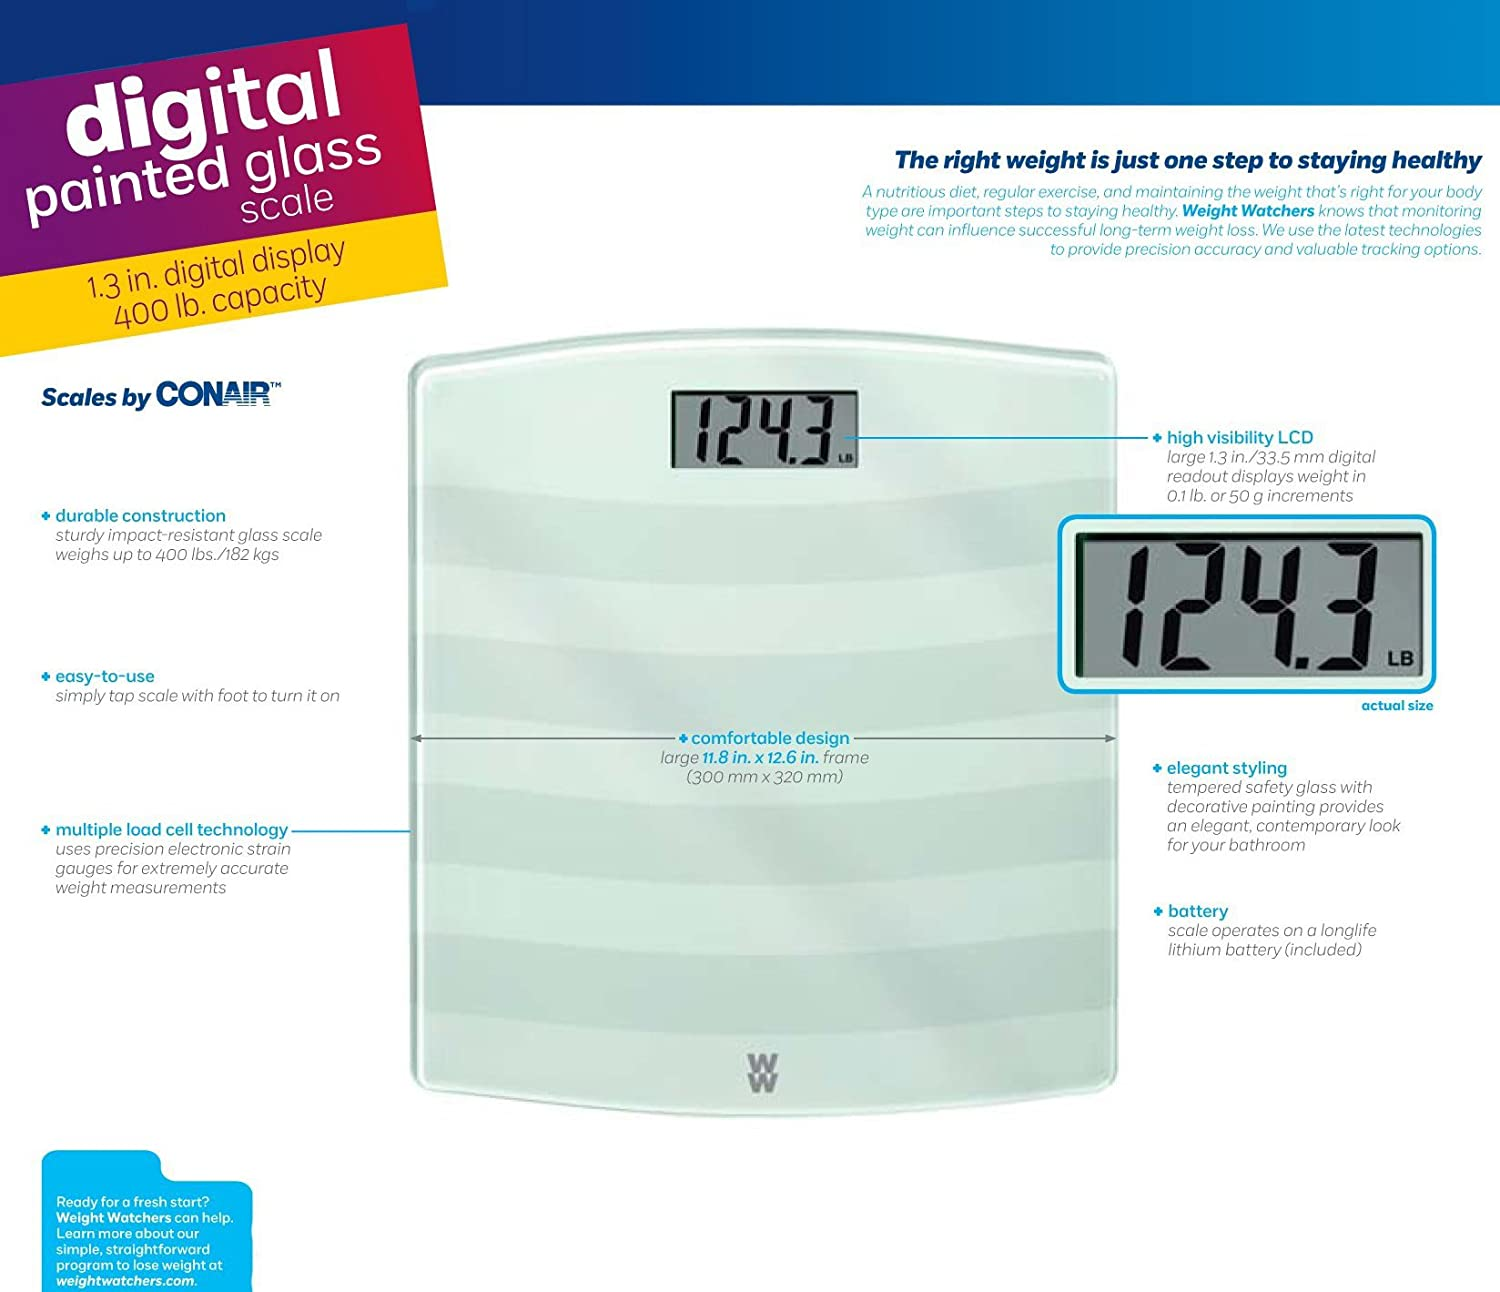 Amazon weight watchers scales by conair digital painted glass amazon weight watchers scales by conair digital painted glass scale white health personal care nvjuhfo Images